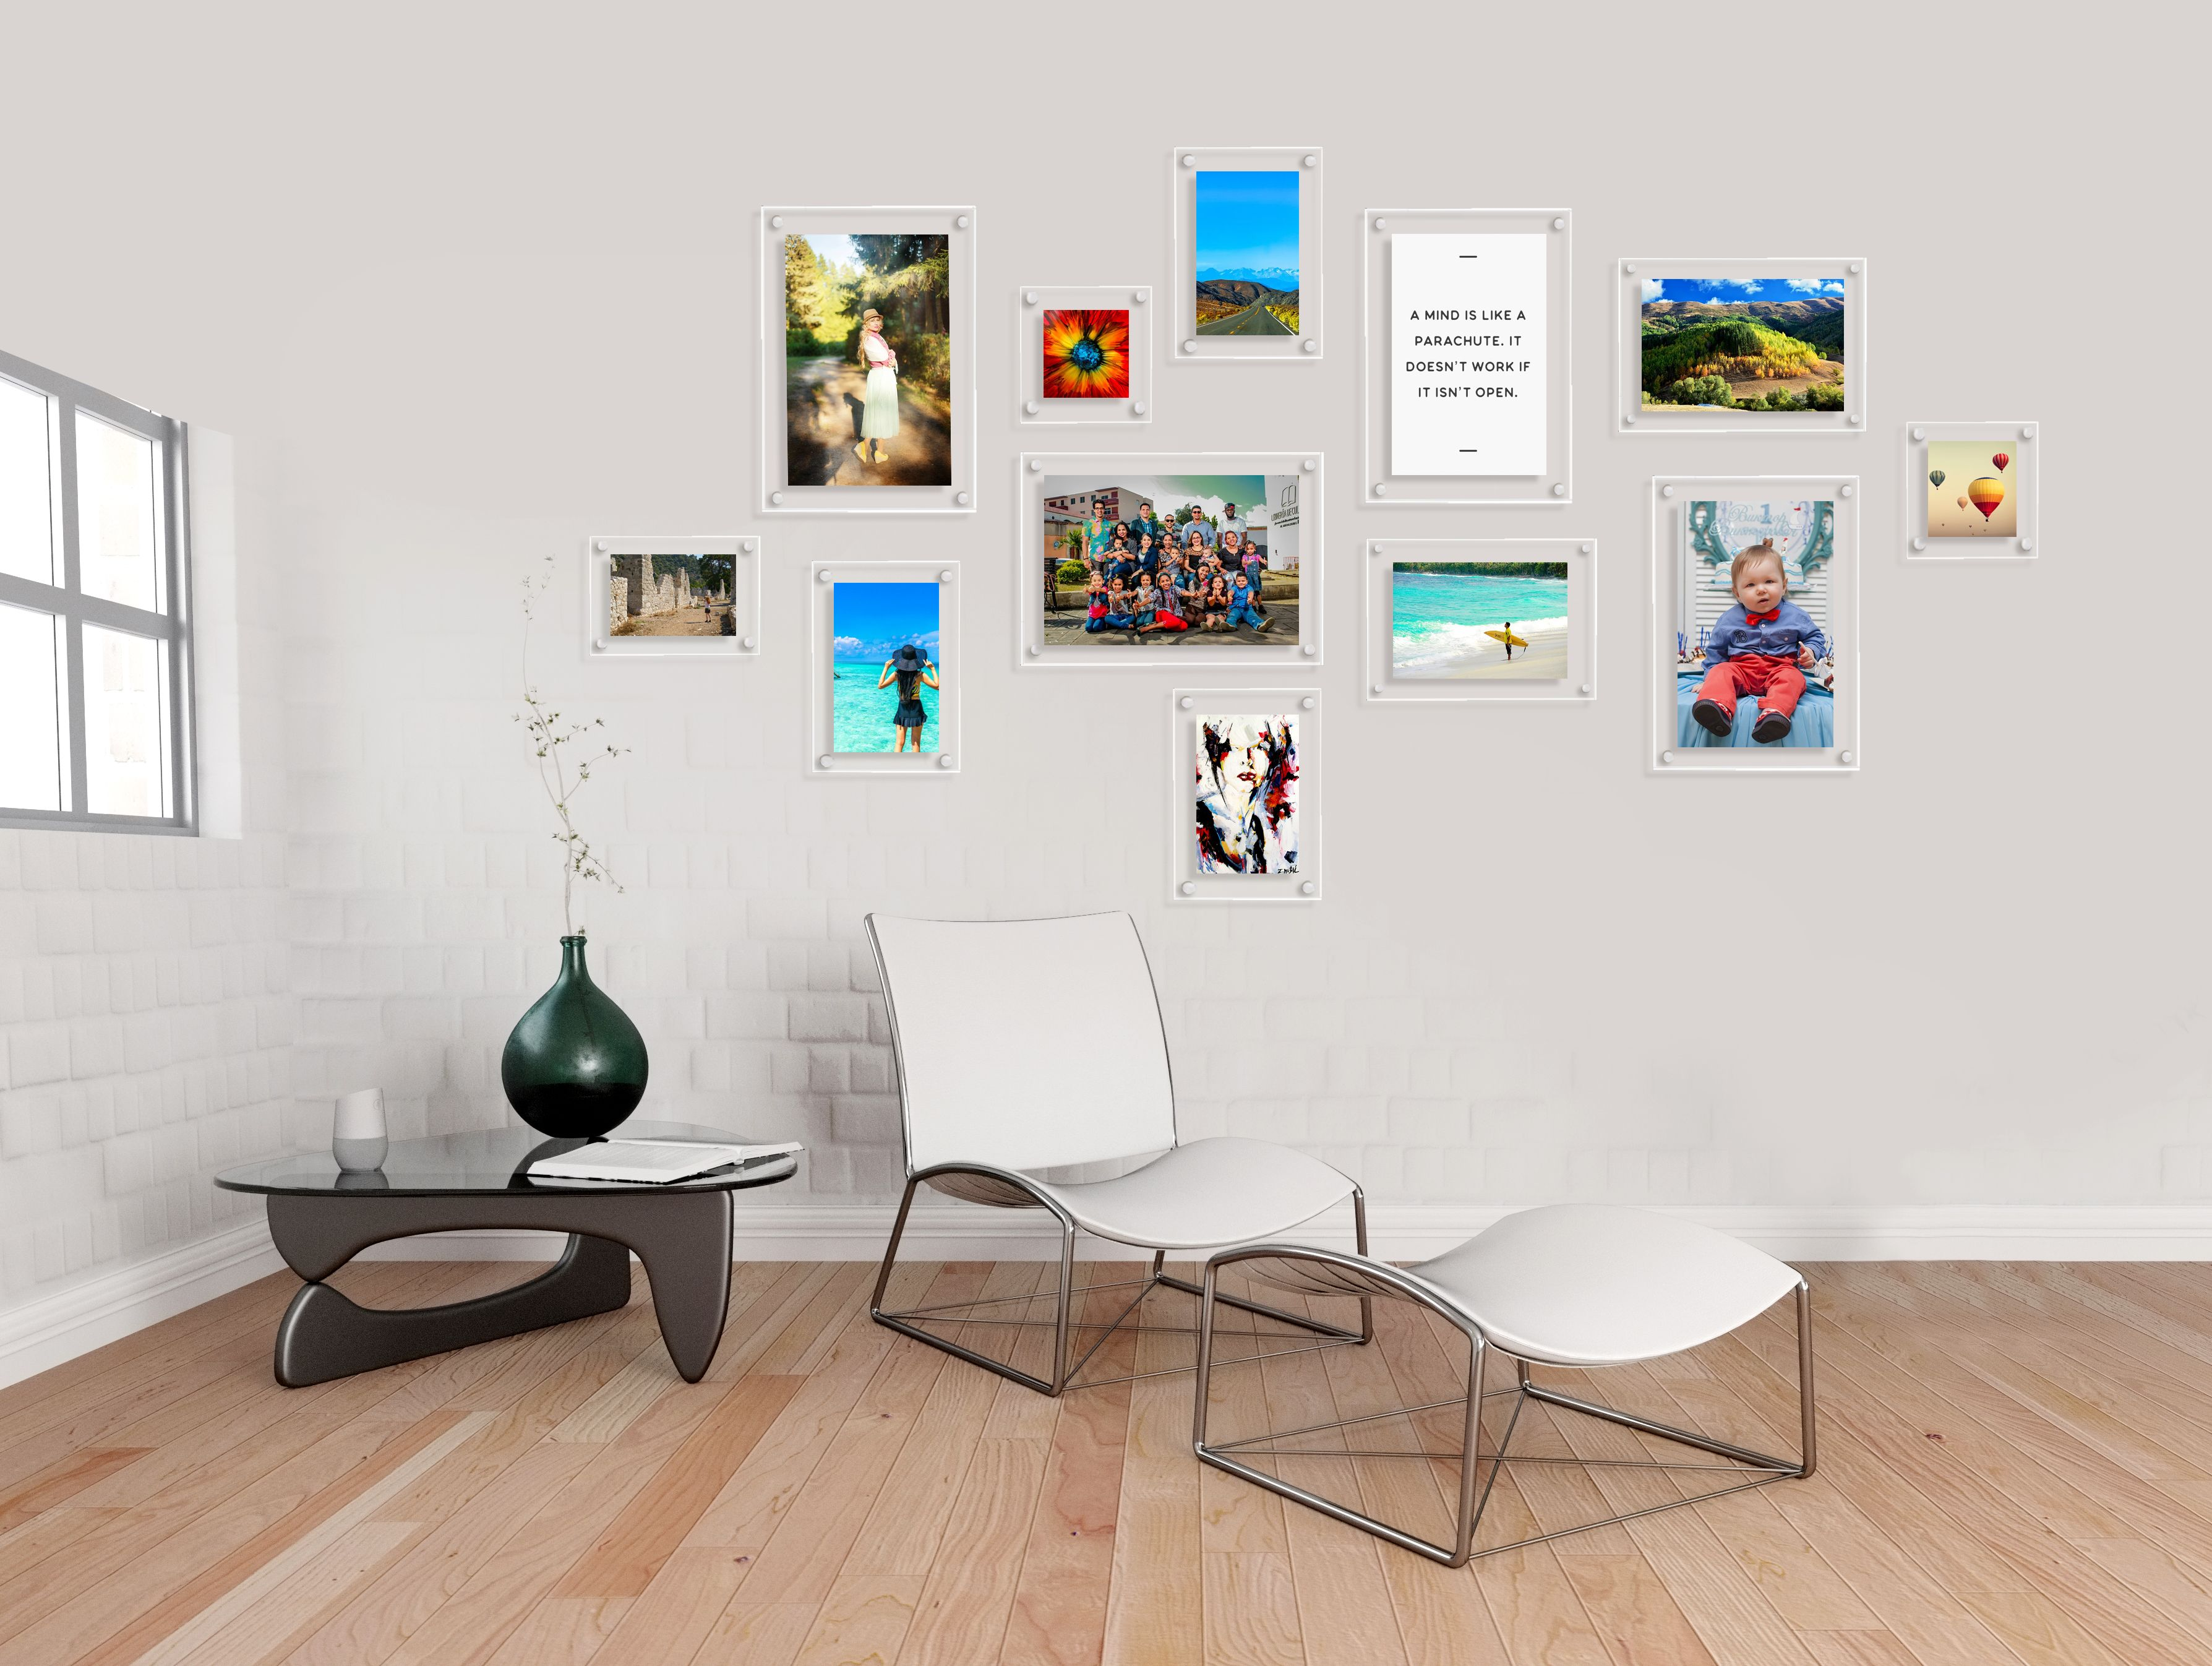 Stunning gallery wall display using ecrylic photo frames for a stunning gallery wall display using ecrylic photo frames for a modern floating feel buy jeuxipadfo Images